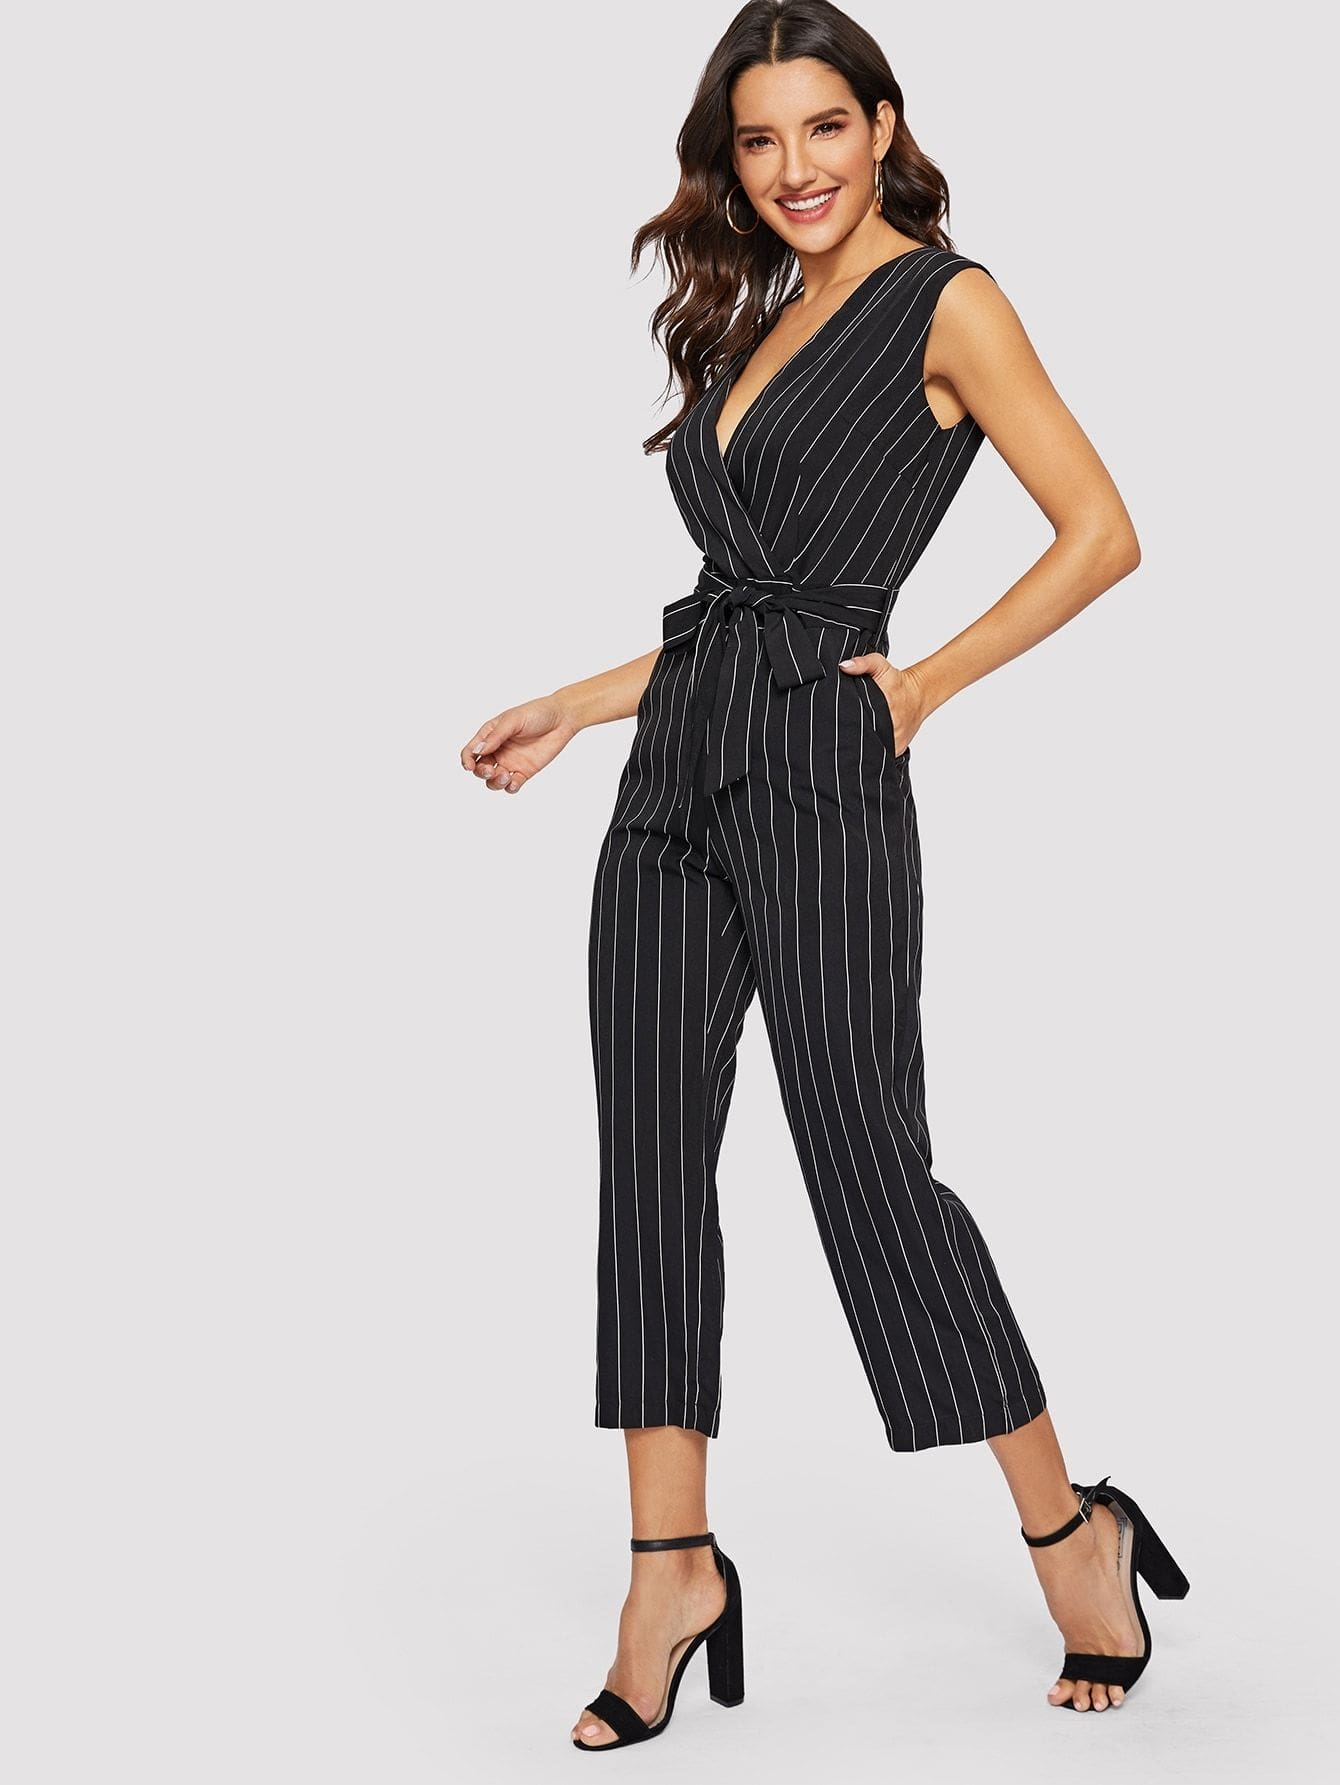 acfee056769 Striped Deep V Neck Belted Jumpsuit - S - Womens Jumpsuits